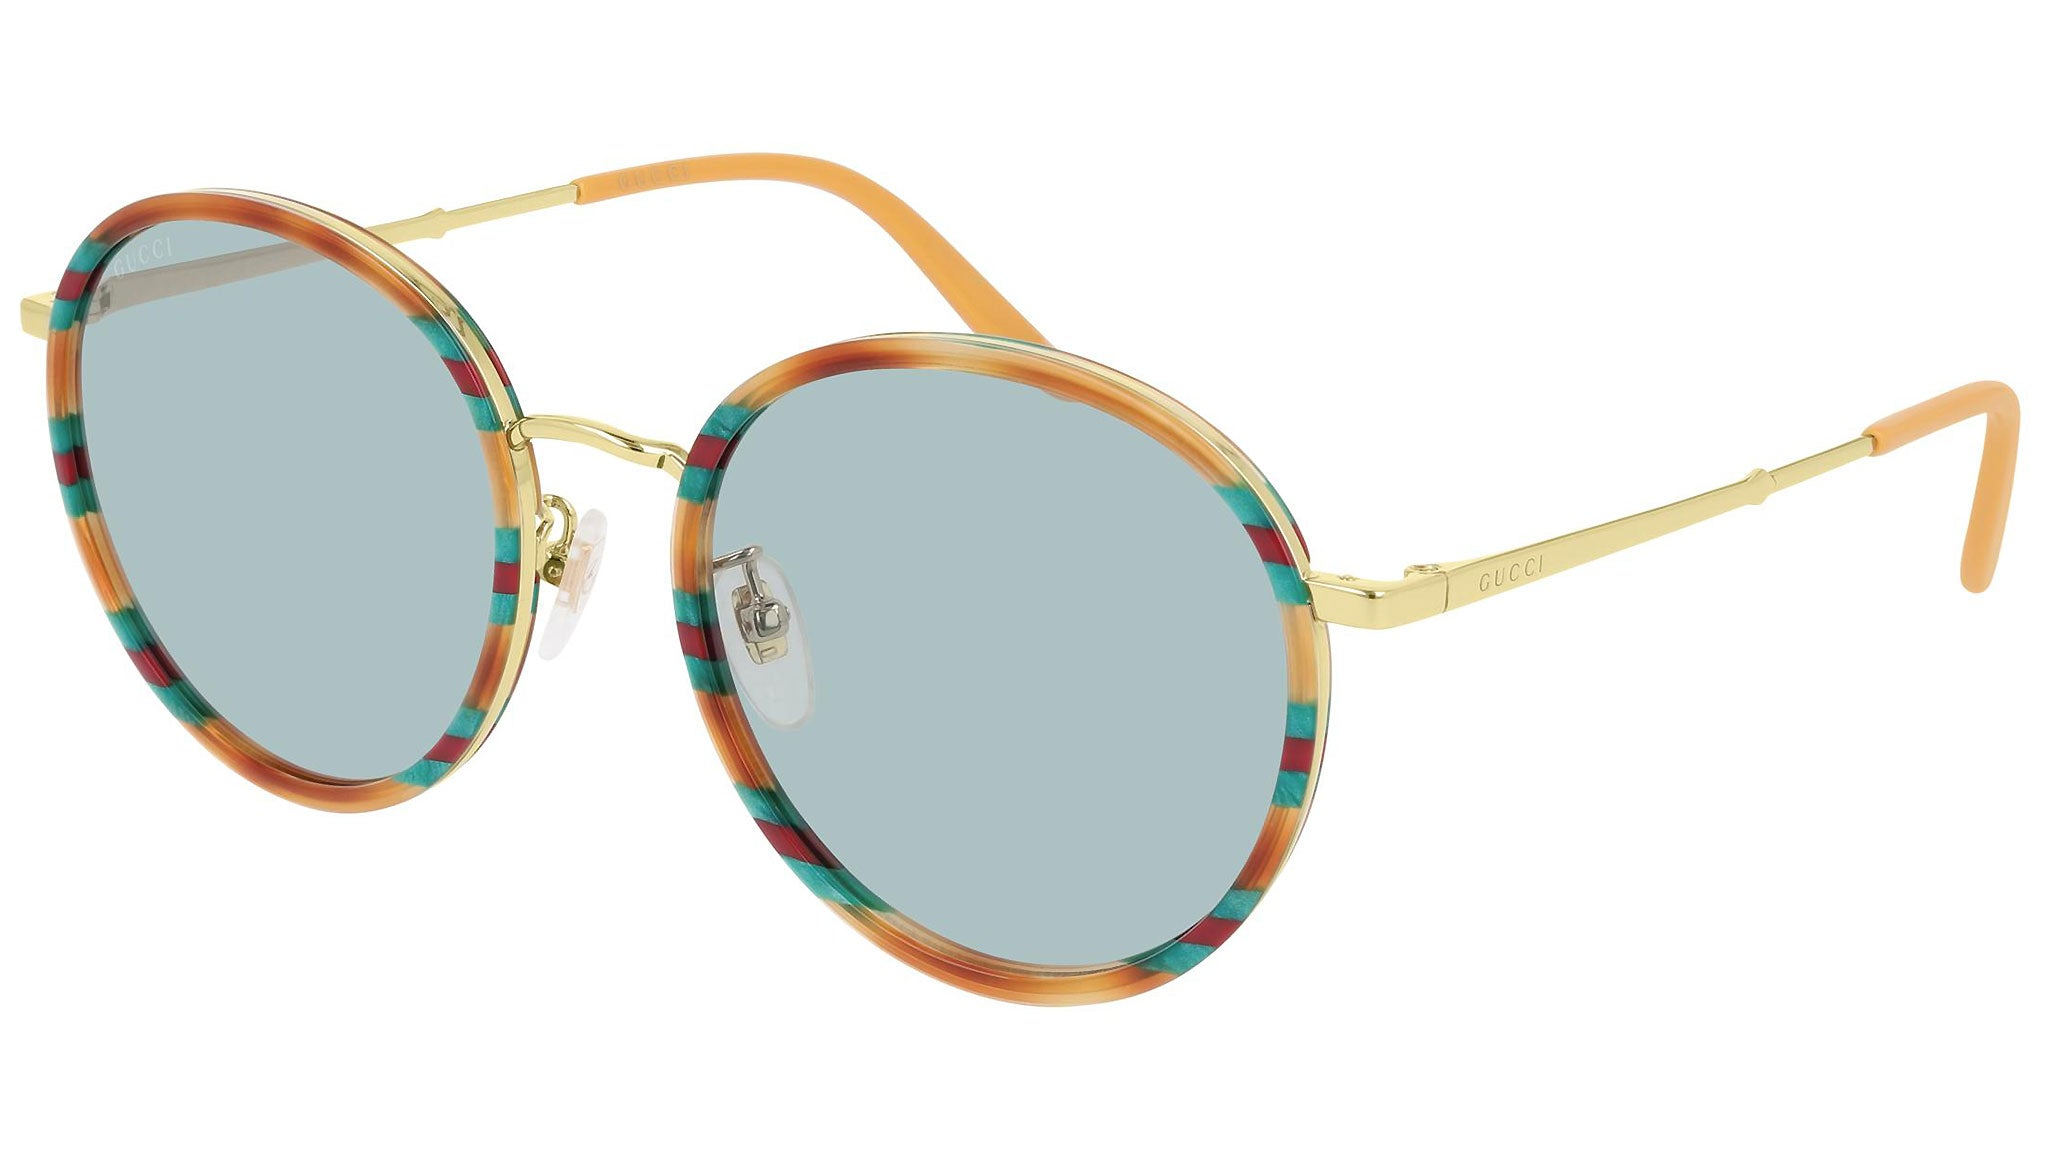 GG0677SK multicolor havana and ice blue